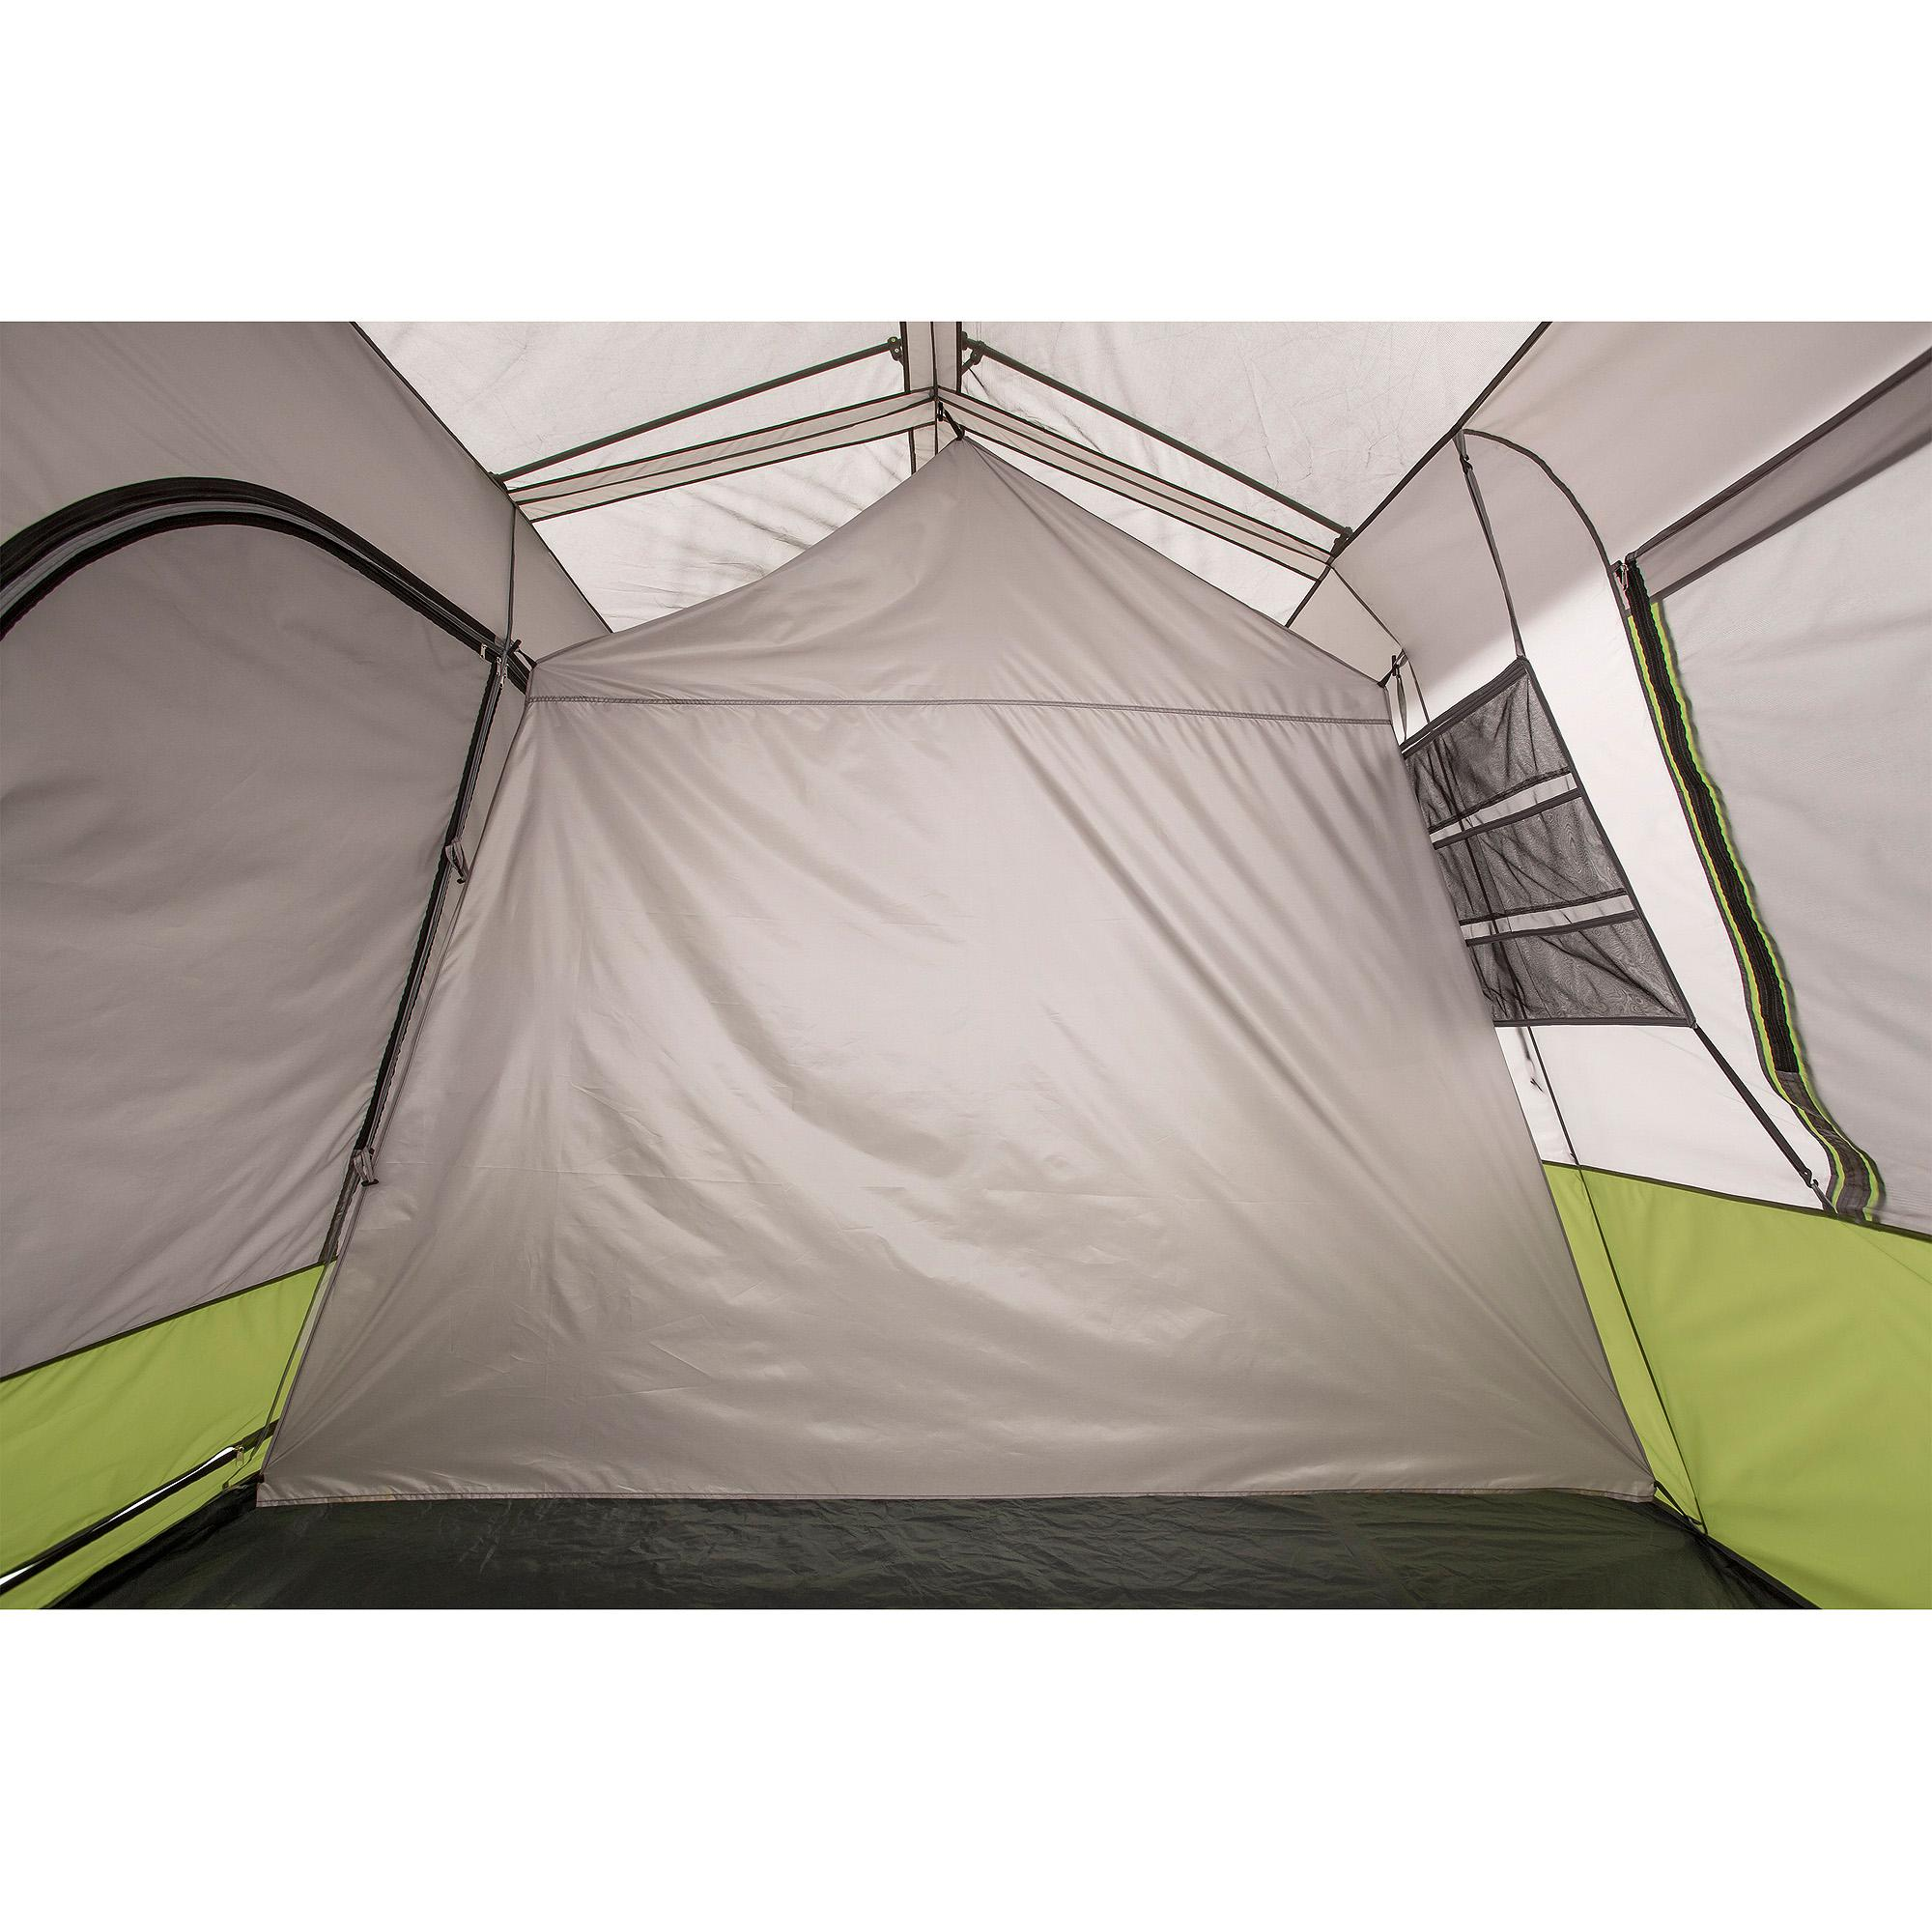 Ozark trail 9 person 2 room instant cabin tent with screen for What is a tent cabin